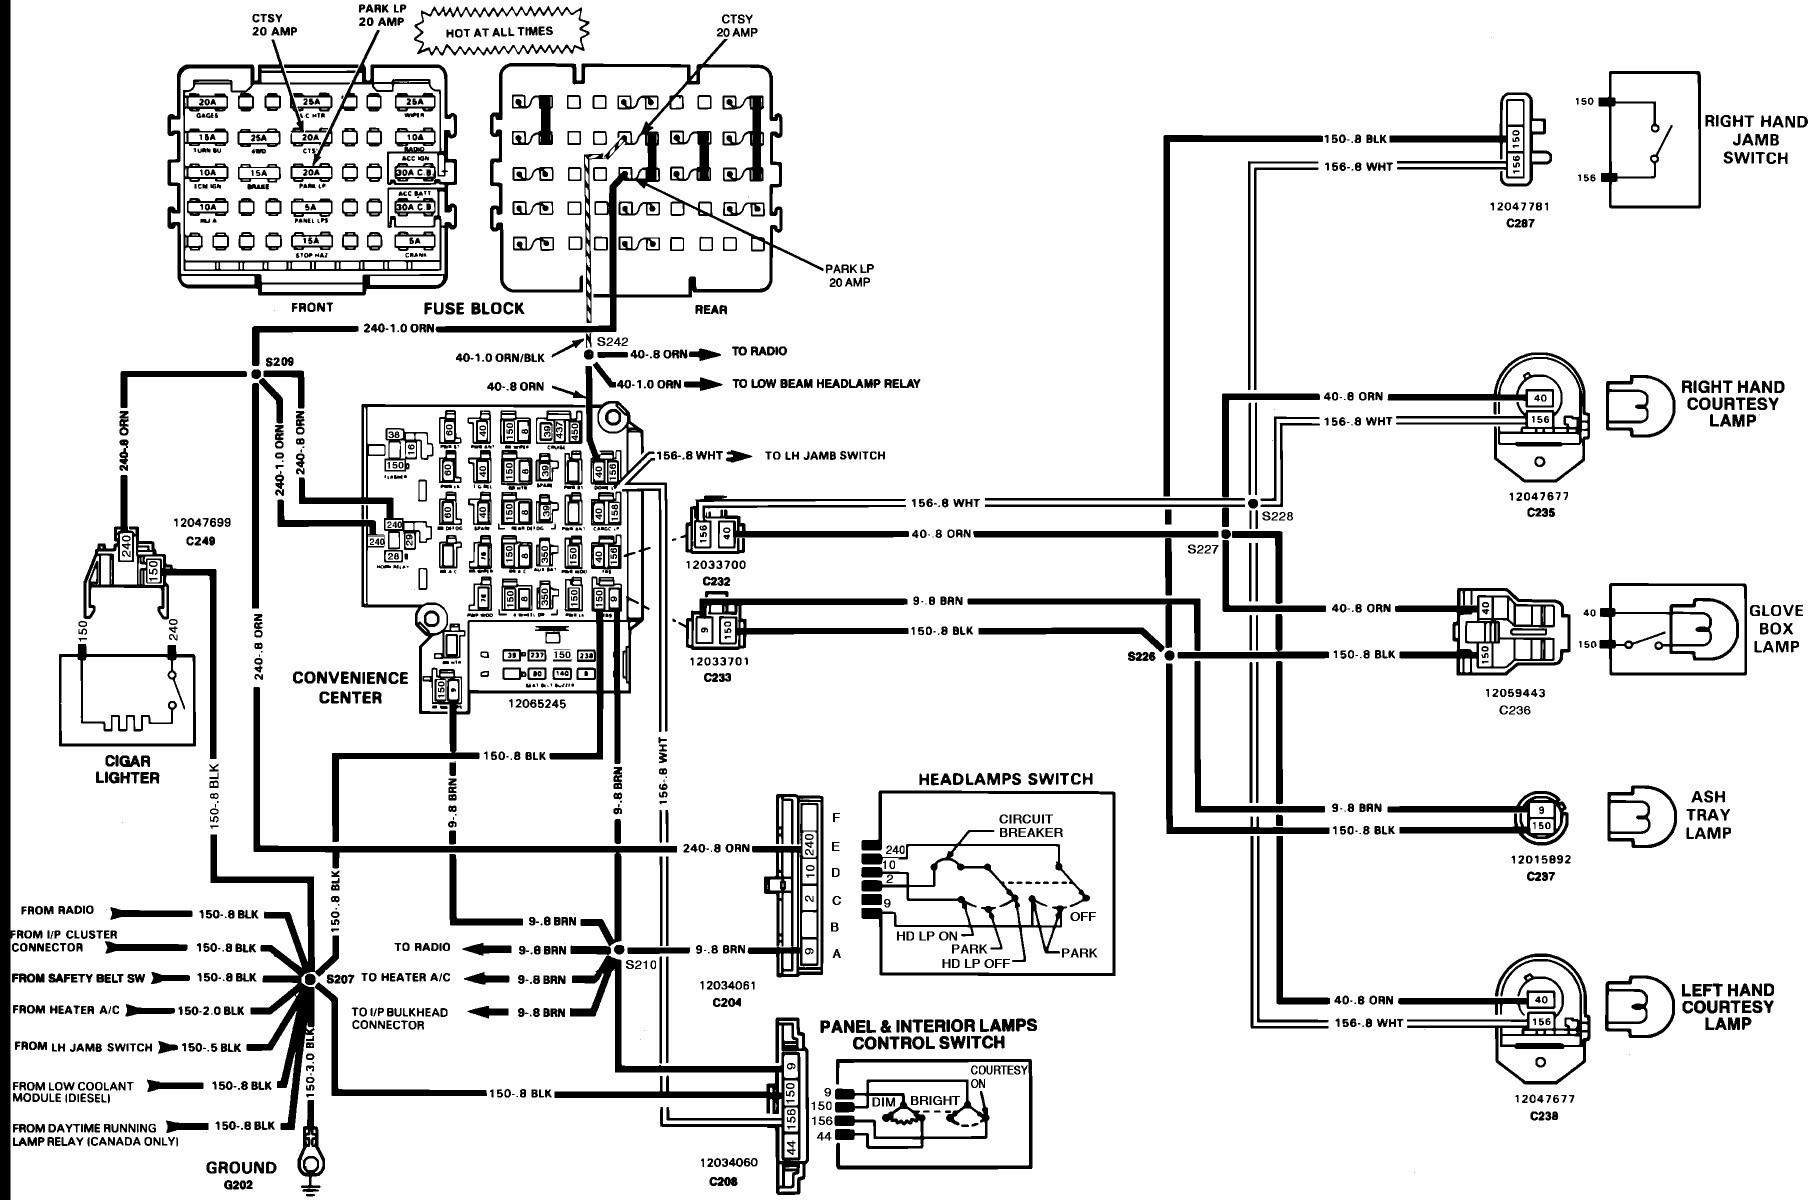 1988 Audi 90 Wiring Diagram - 1.6.tierarztpraxis-ruffy.de • Audi A Electrical Diagram on gmc sierra electrical diagram, jeep patriot electrical diagram, dodge charger electrical diagram, subaru forester electrical diagram, toyota sequoia electrical diagram, 2002 pt cruiser electrical diagram, volvo 740 electrical diagram, audi a5 electrical diagram, volkswagen golf electrical diagram, chevrolet silverado electrical diagram, mazda 5 electrical diagram, acura tl electrical diagram, buick regal electrical diagram, ford f-150 electrical diagram, ford e350 electrical diagram, ford taurus electrical diagram, chrysler 200 electrical diagram, mazda 6 electrical diagram, hummer h3 electrical diagram, saab 9-3 electrical diagram,